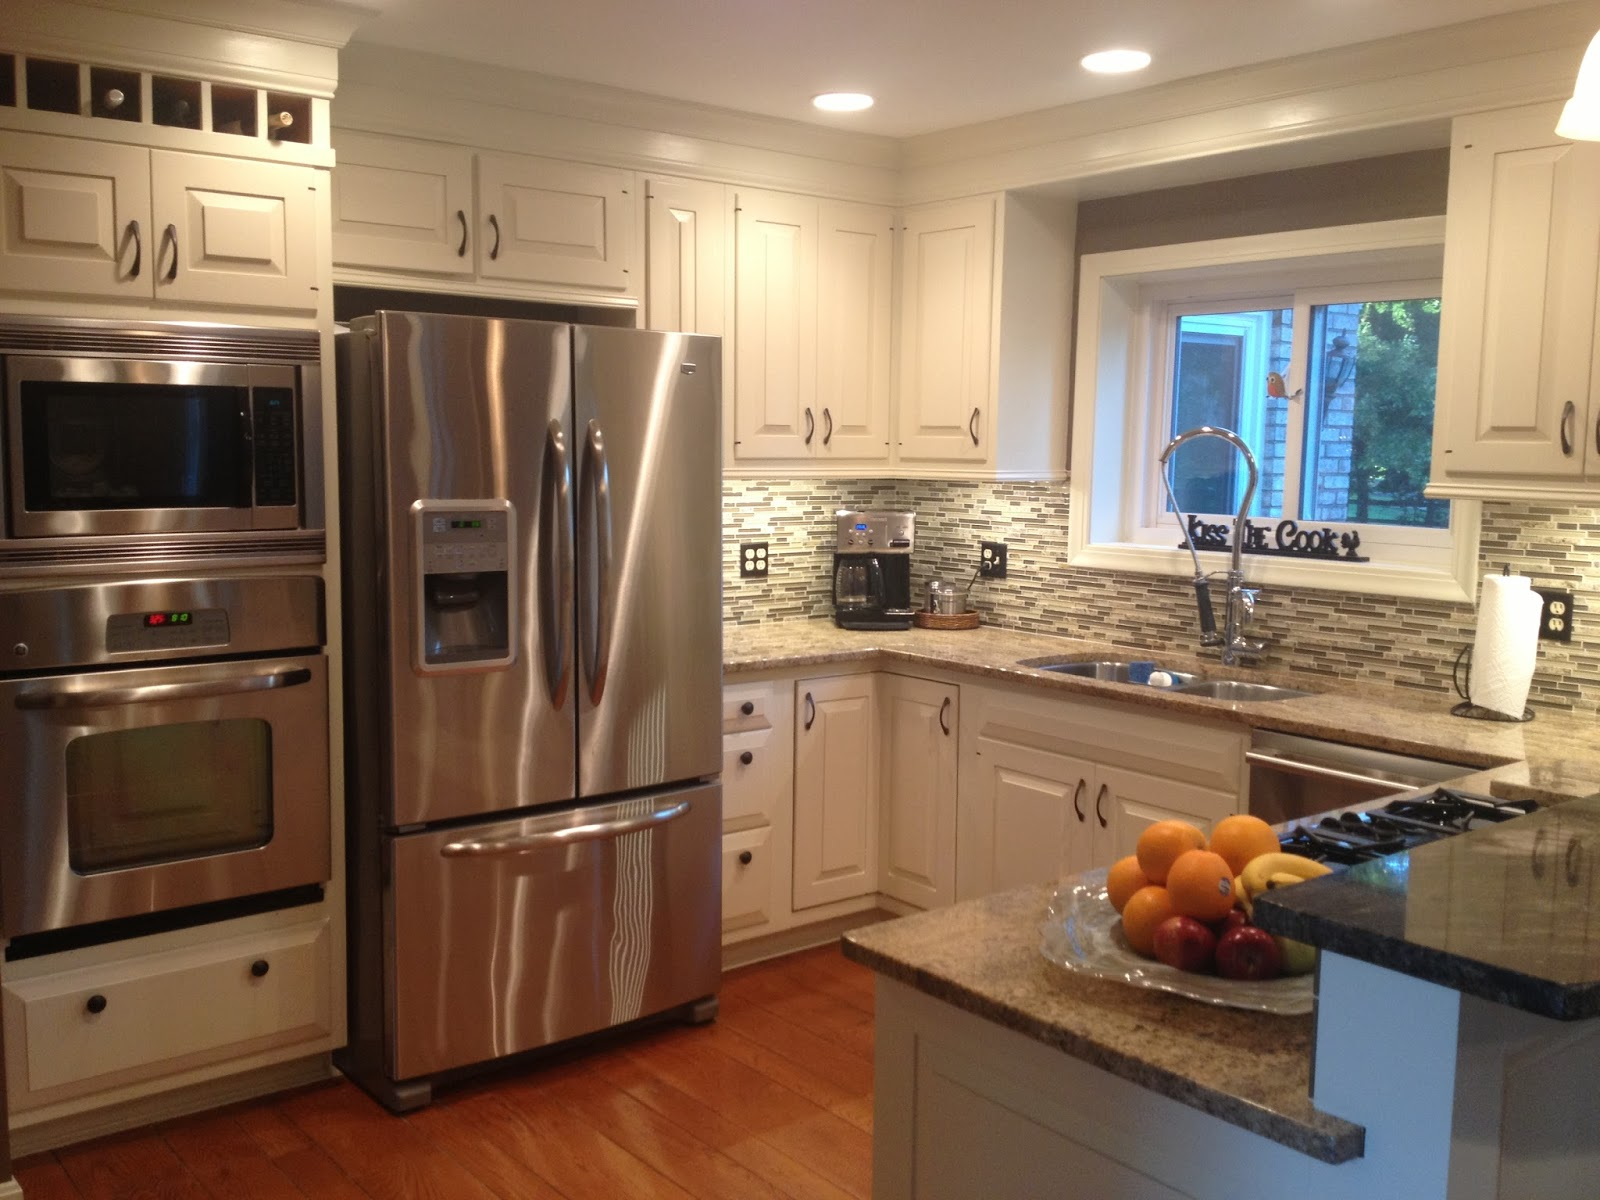 Four seasons style the new kitchen remodel on a budget for Kitchen remodels on a budget